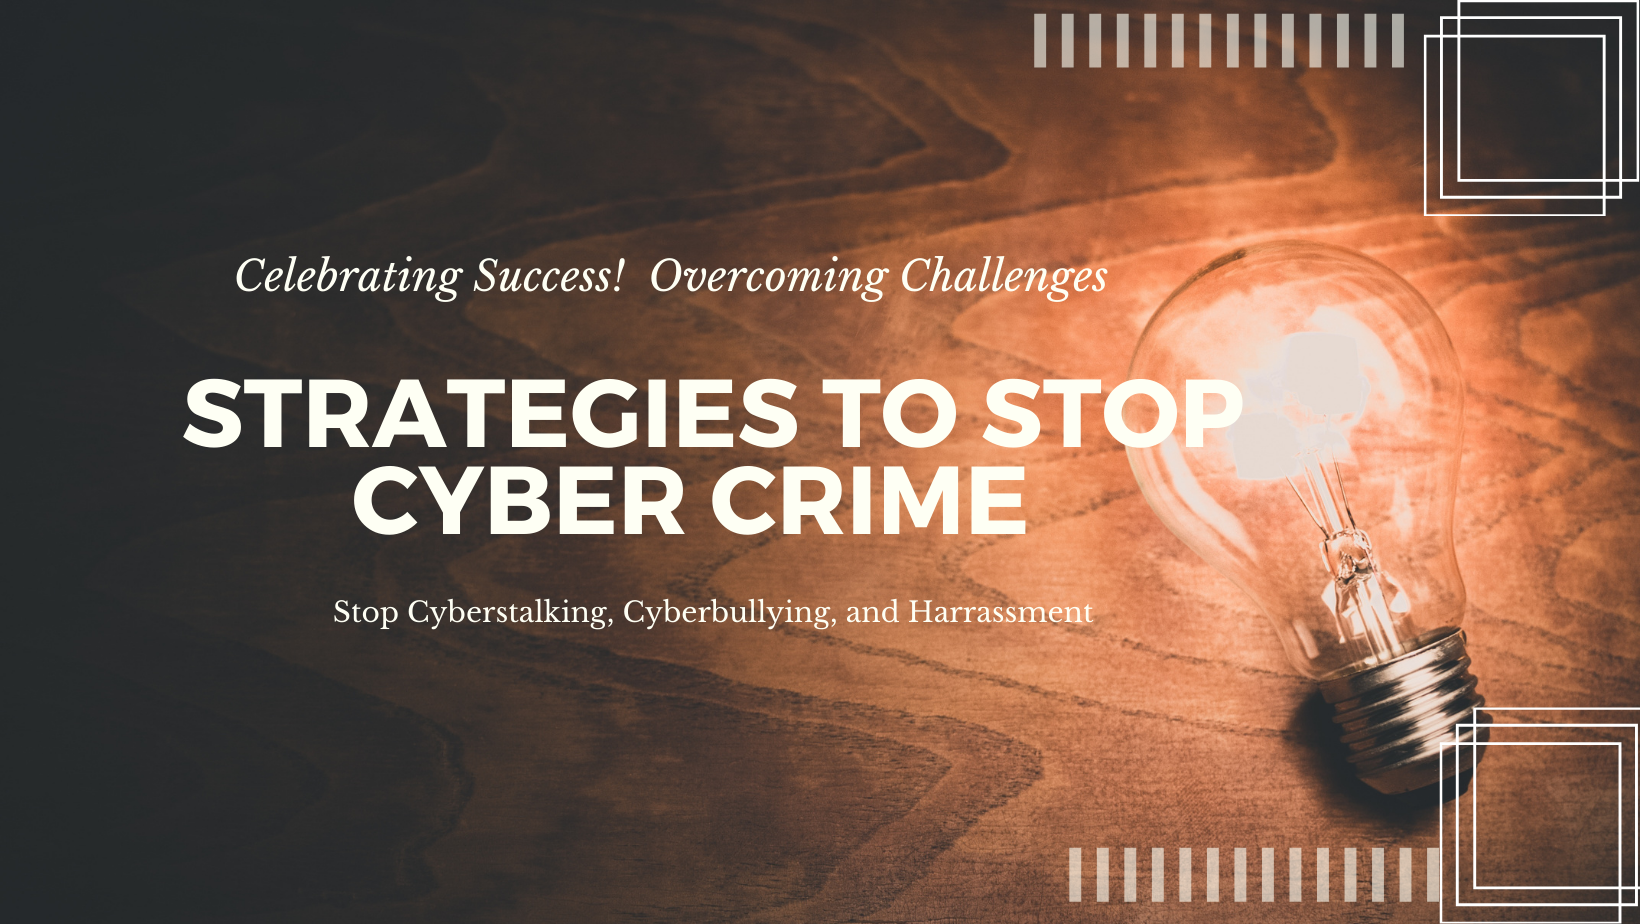 Strategies to Stop Cyber Crime & Bullying